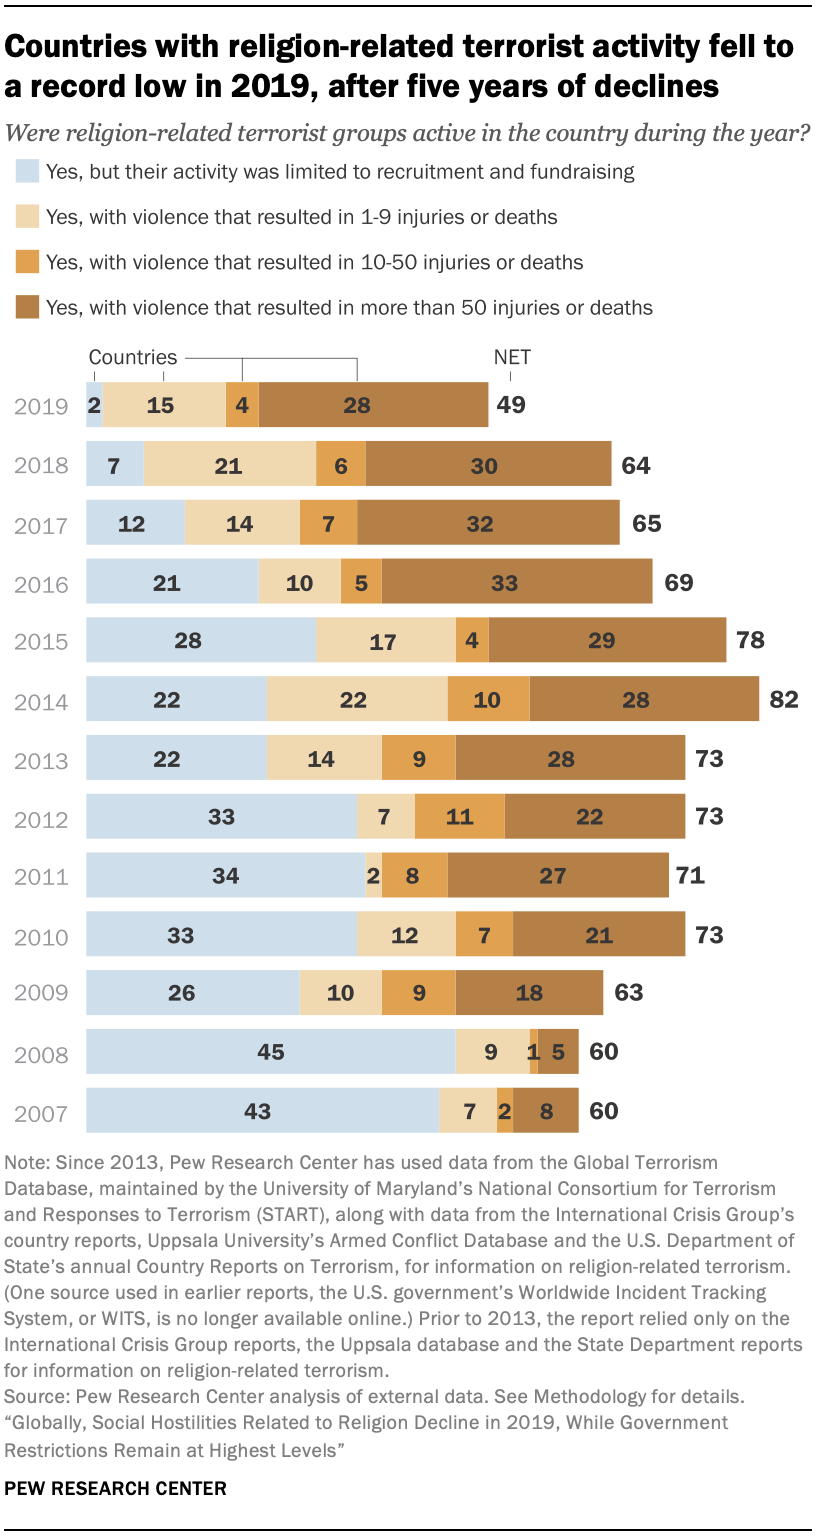 Countries with religion-related terrorist activity fell to a record low in 2019, after five years of declines